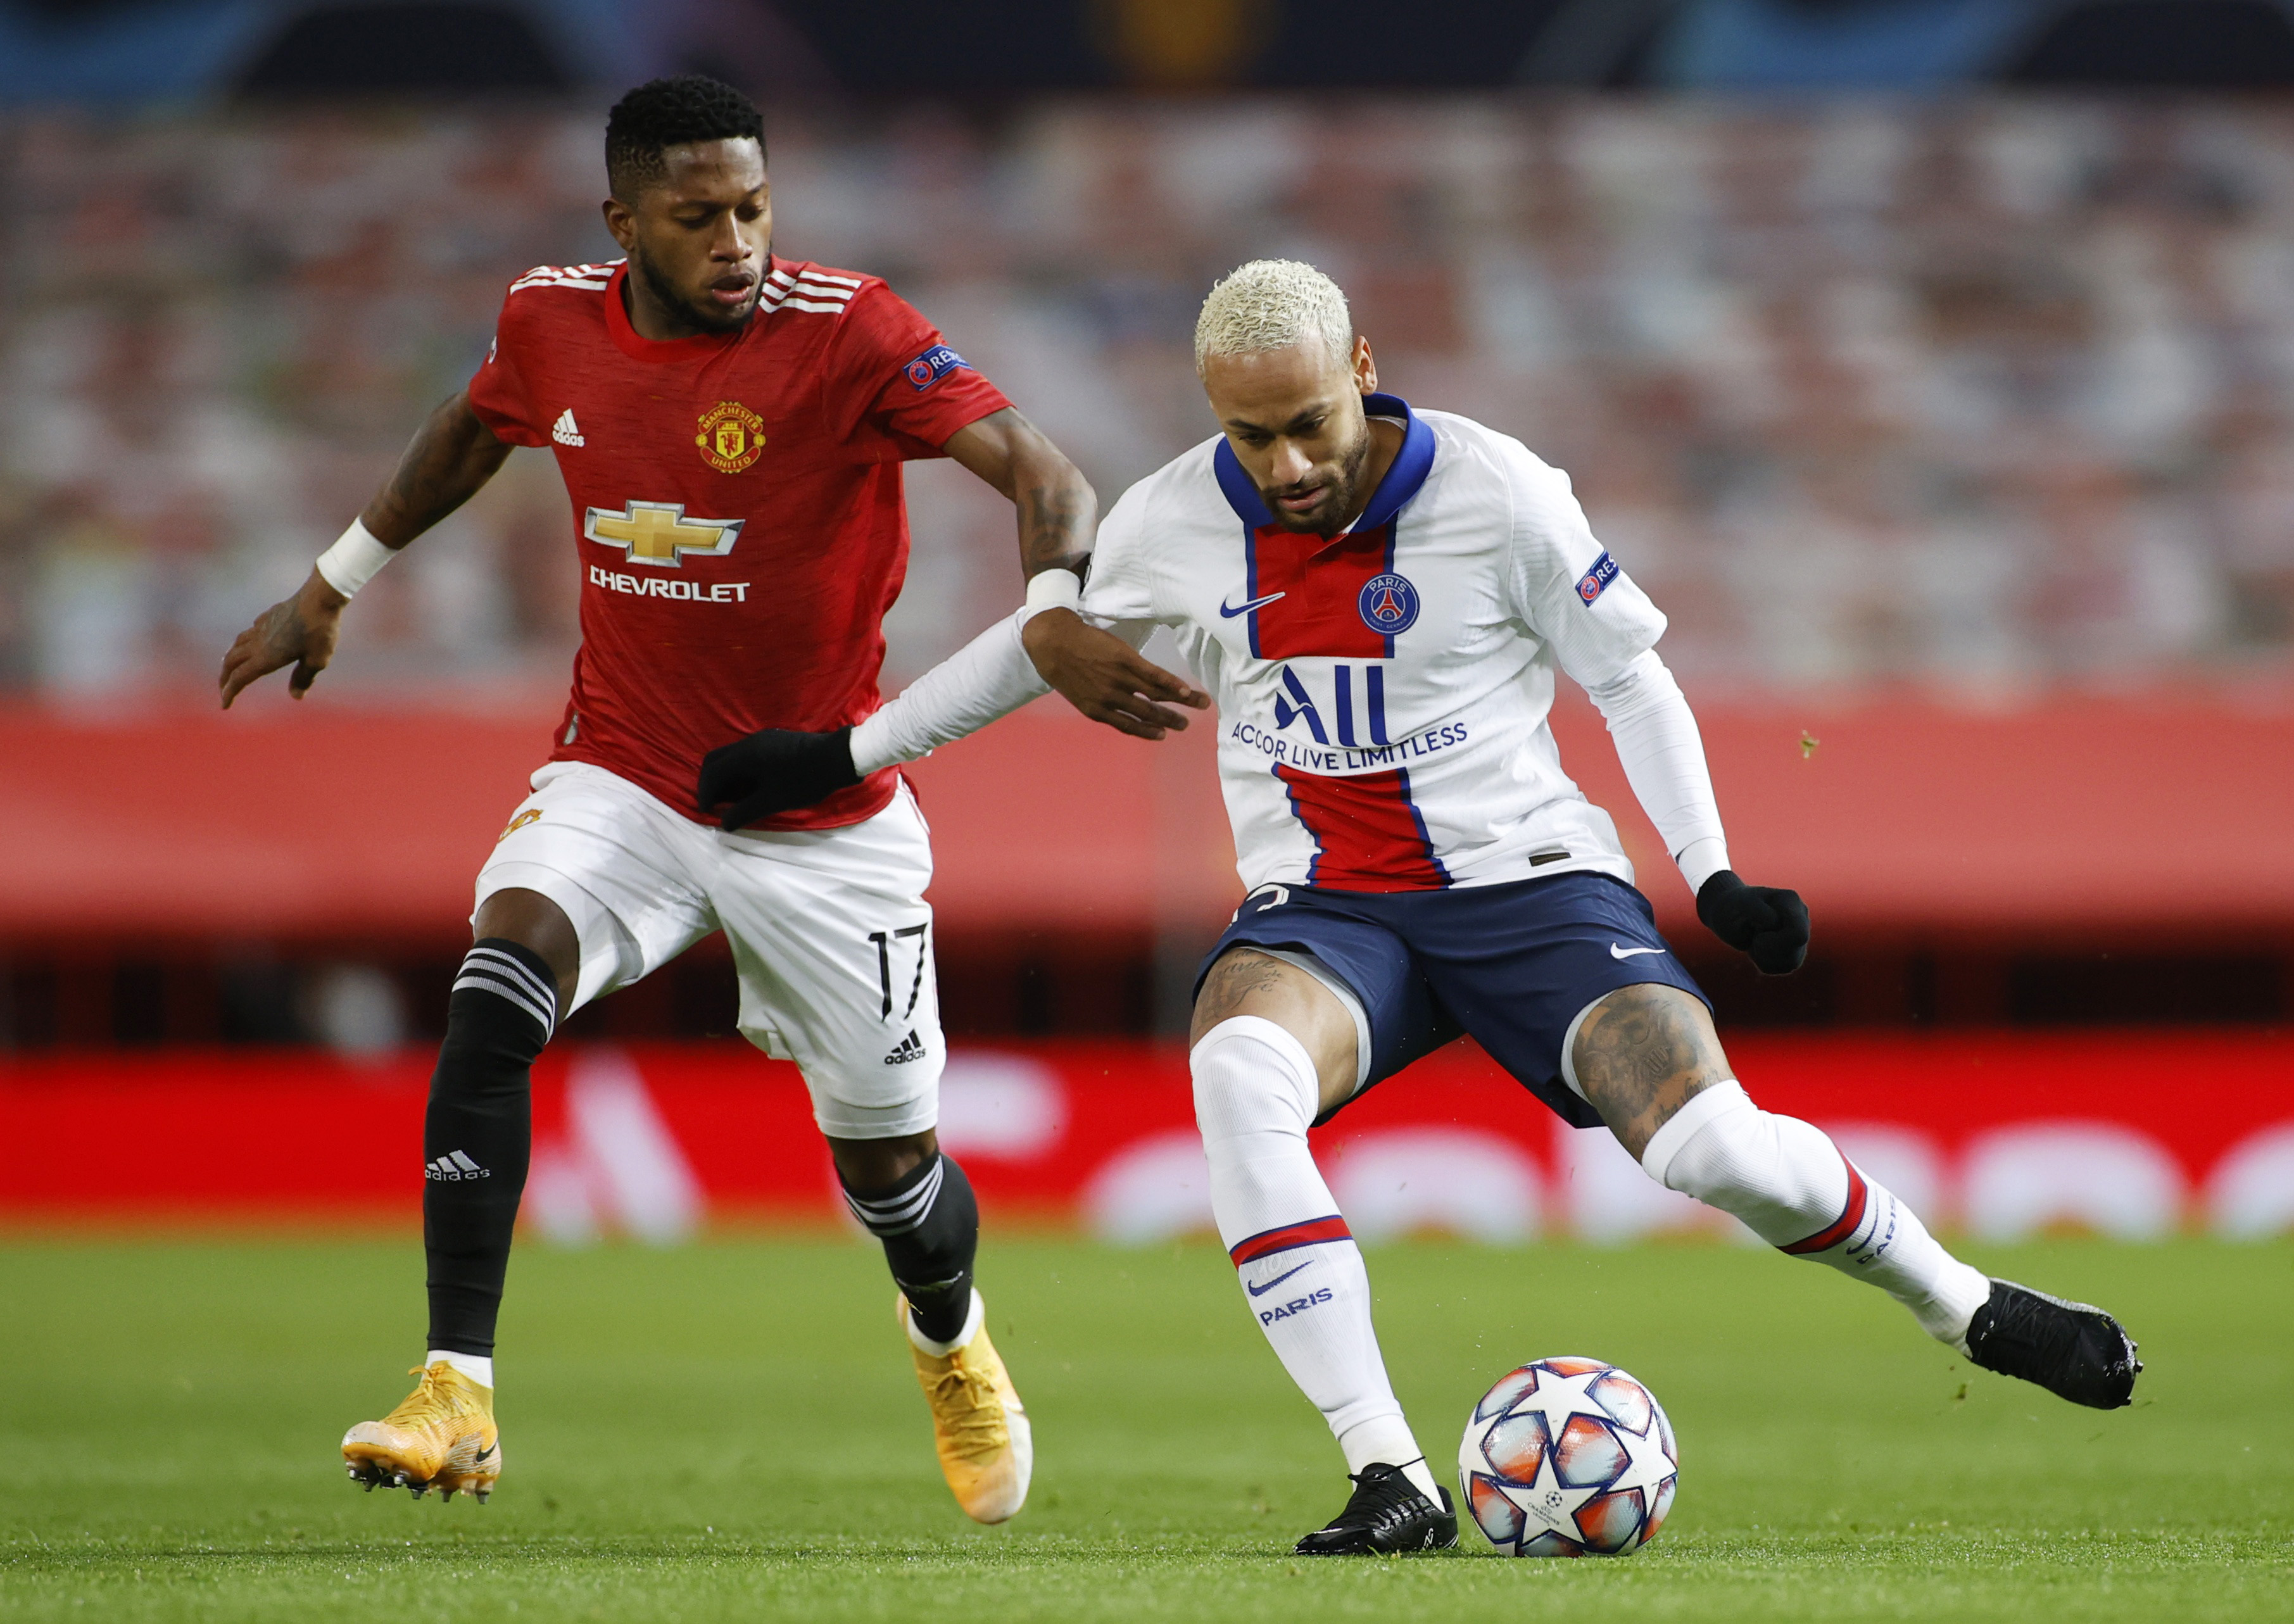 Manchester United's Fred in action with Paris St Germain's Neymar. Photo: Reuters